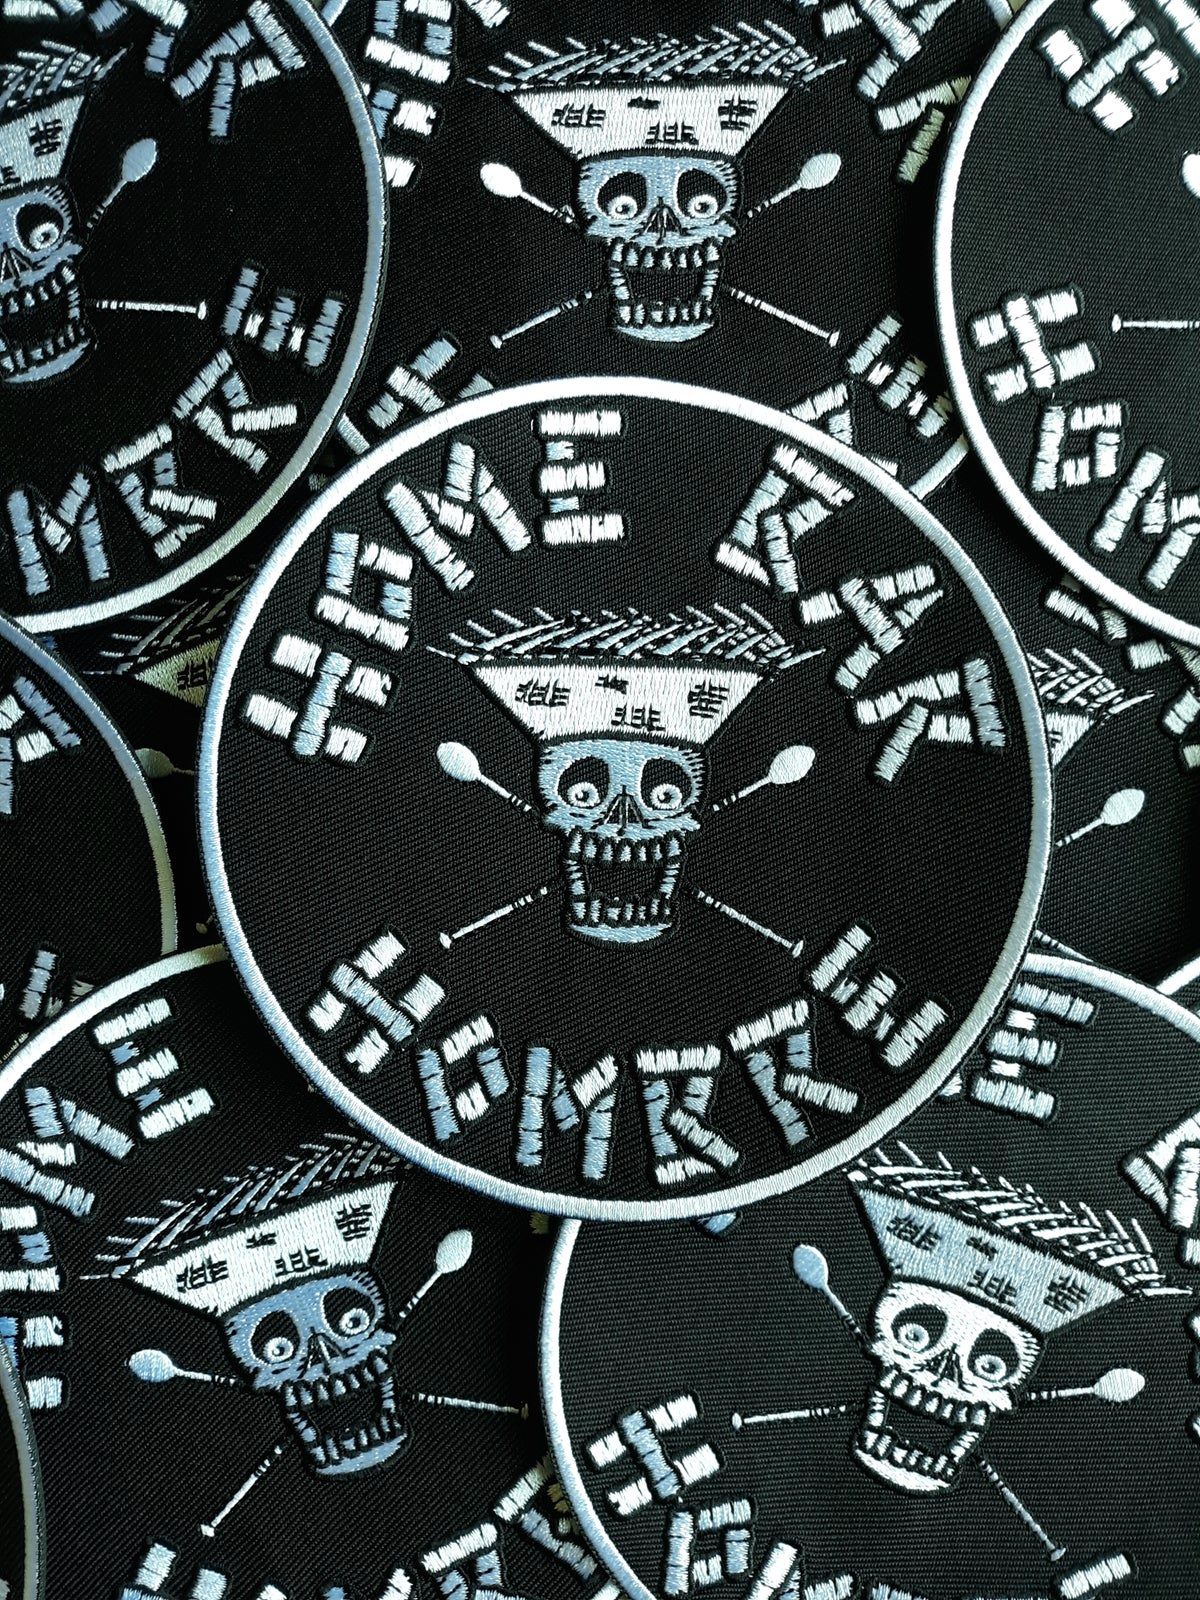 """HOME BAR HOMBRE 5"""" Embroidered Iron/Sew-On Biker Style Patch"""